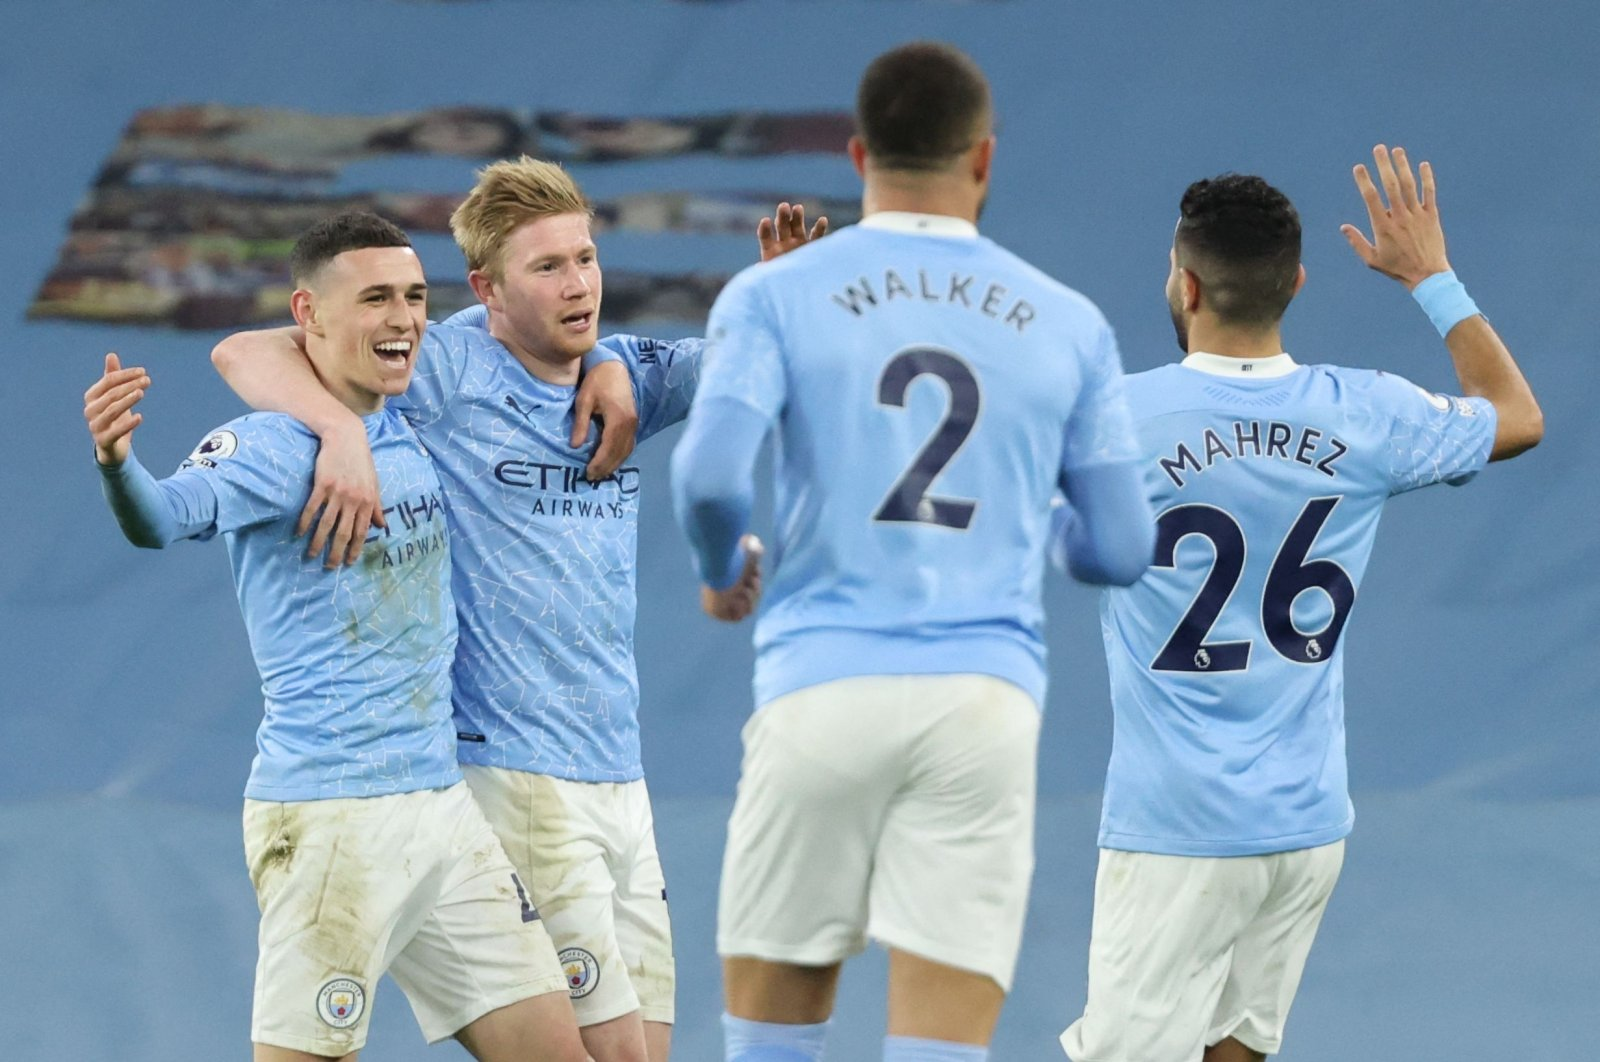 Manchester City players celebrate a goal during a Premier League match against Southampton at the Etihad Stadium in Manchester, England, March 10, 2021. (AFP Photo)